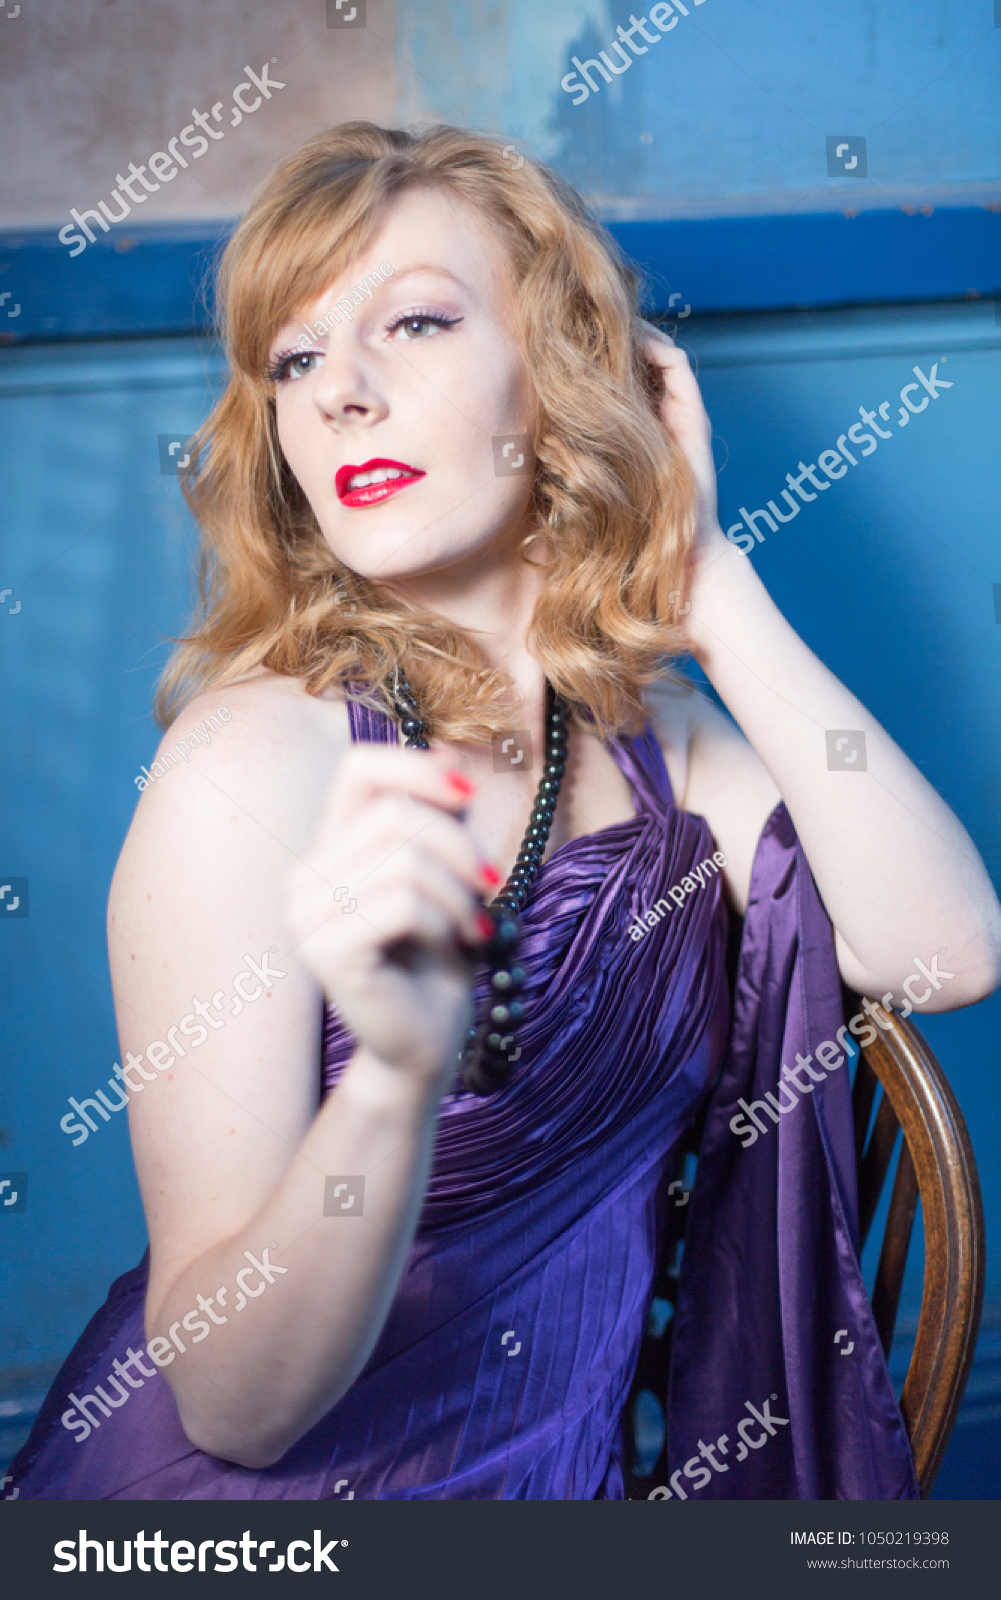 Sexy 1950 style red head female model, Retro film star glamour, purple  evening dress